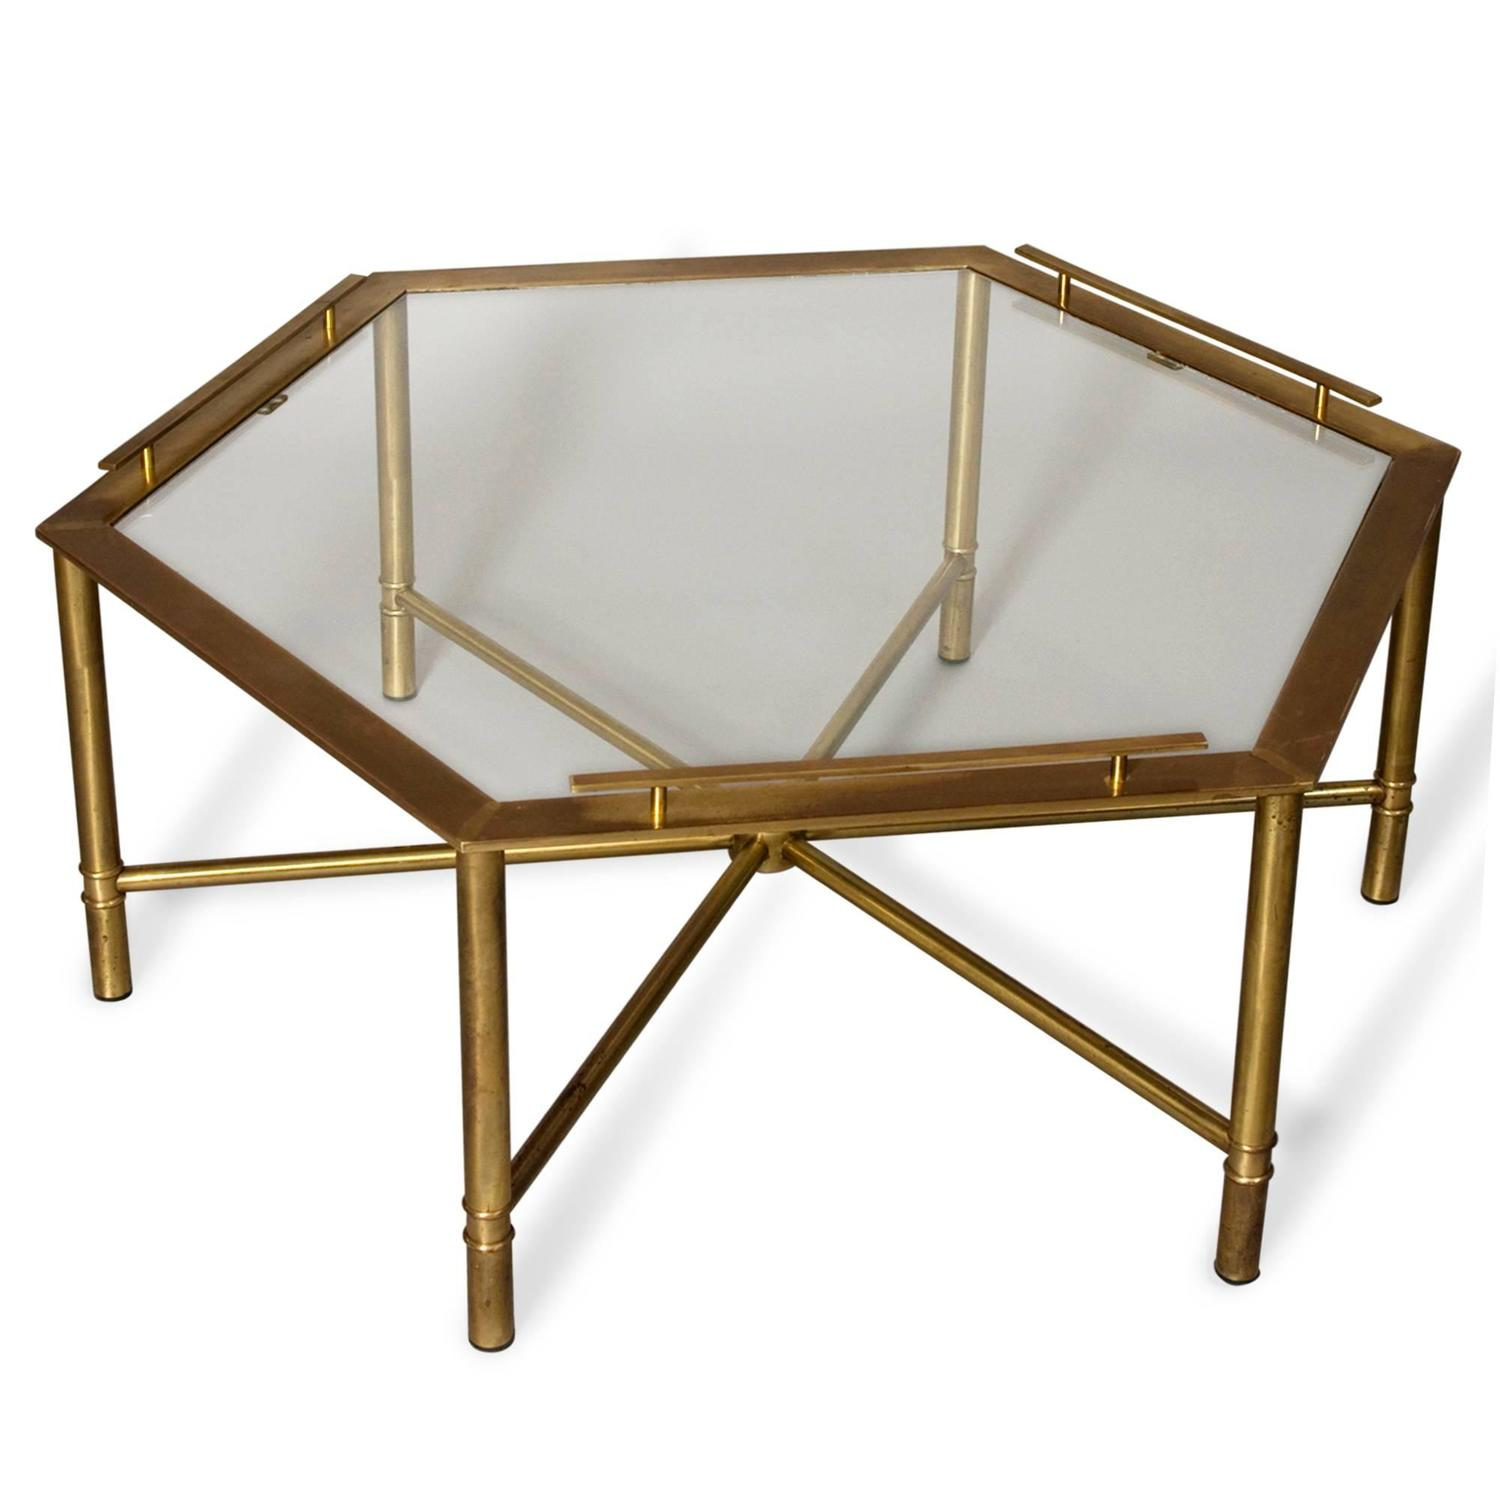 Bronze Hexagonal Coffee Table By Mastercraft At 1stdibs